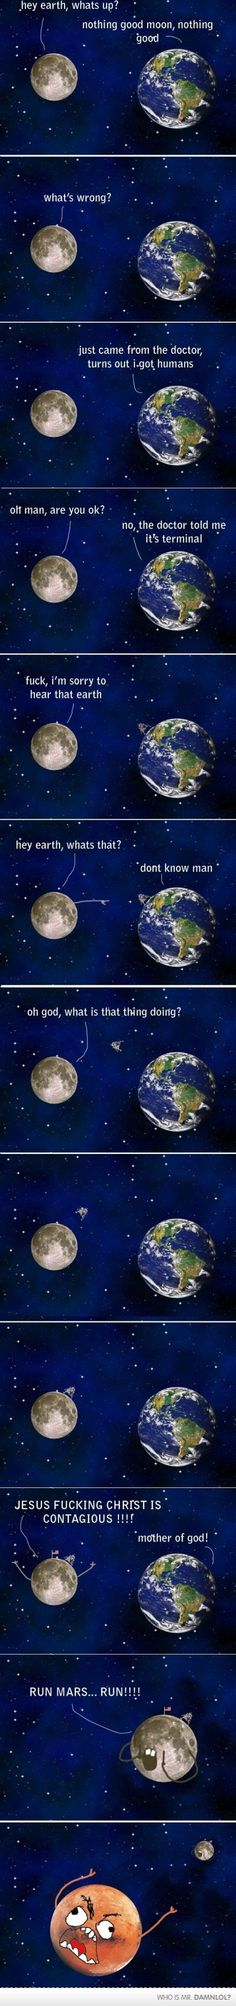 earth and the moon talk